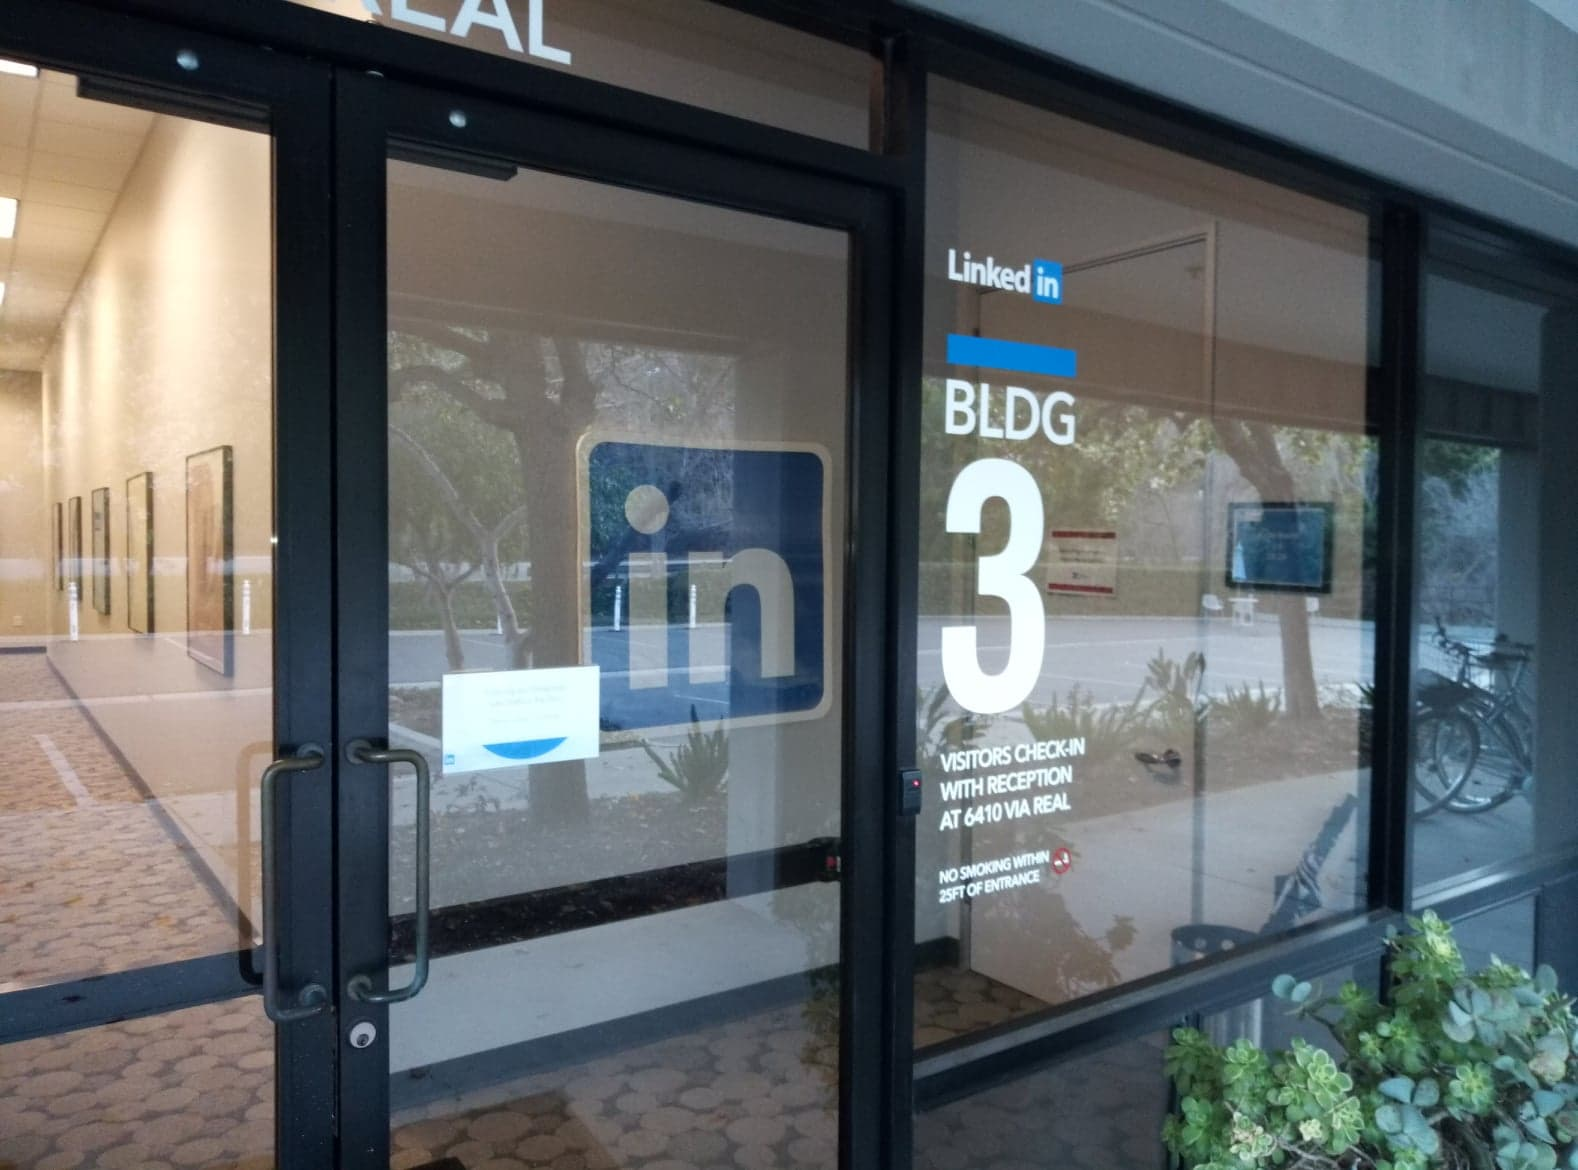 Python course for LinkedIn Learning Building 3